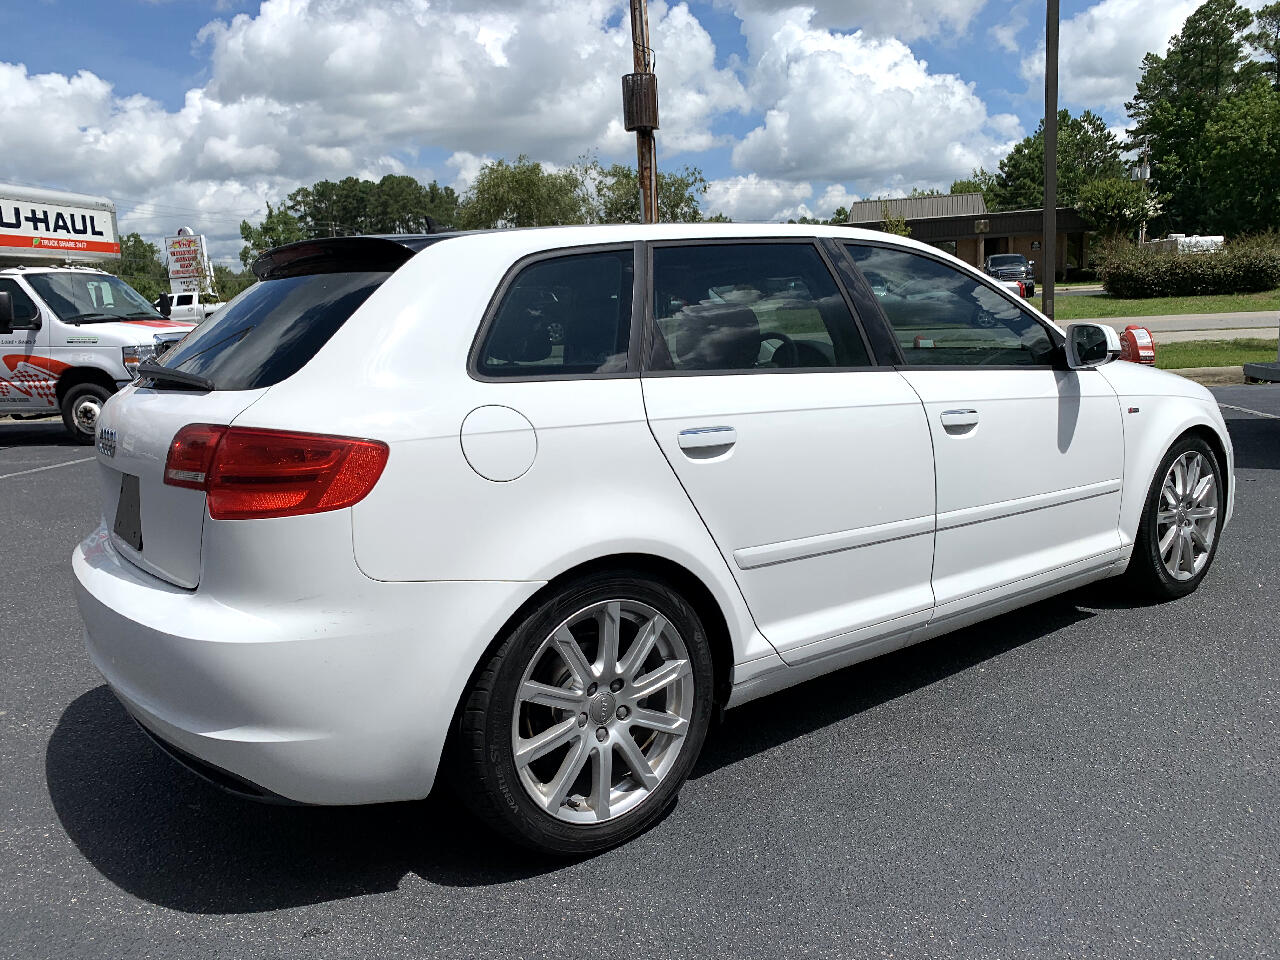 used 2013 audi a3 2 0 tdi diesel s tronic 43 mpg for sale in lumberton nc 28358 lumberton tnt. Black Bedroom Furniture Sets. Home Design Ideas